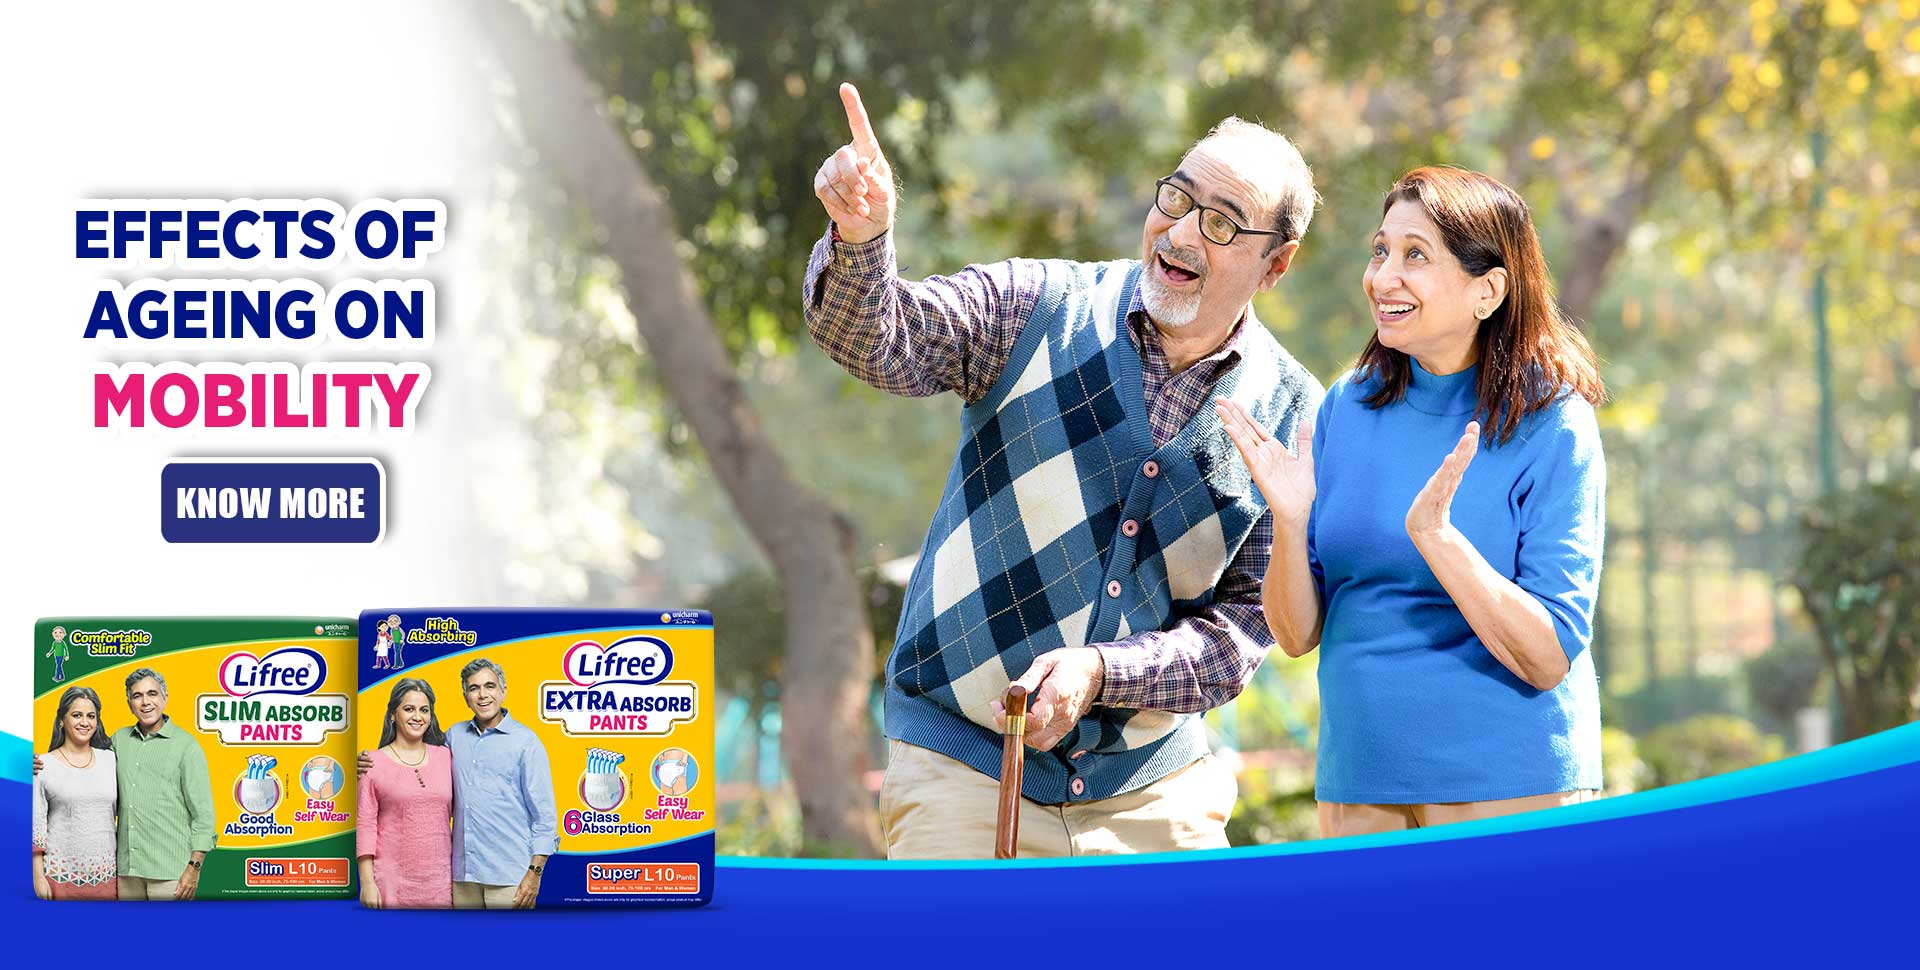 Lifree incontinence urine leakage products for adults